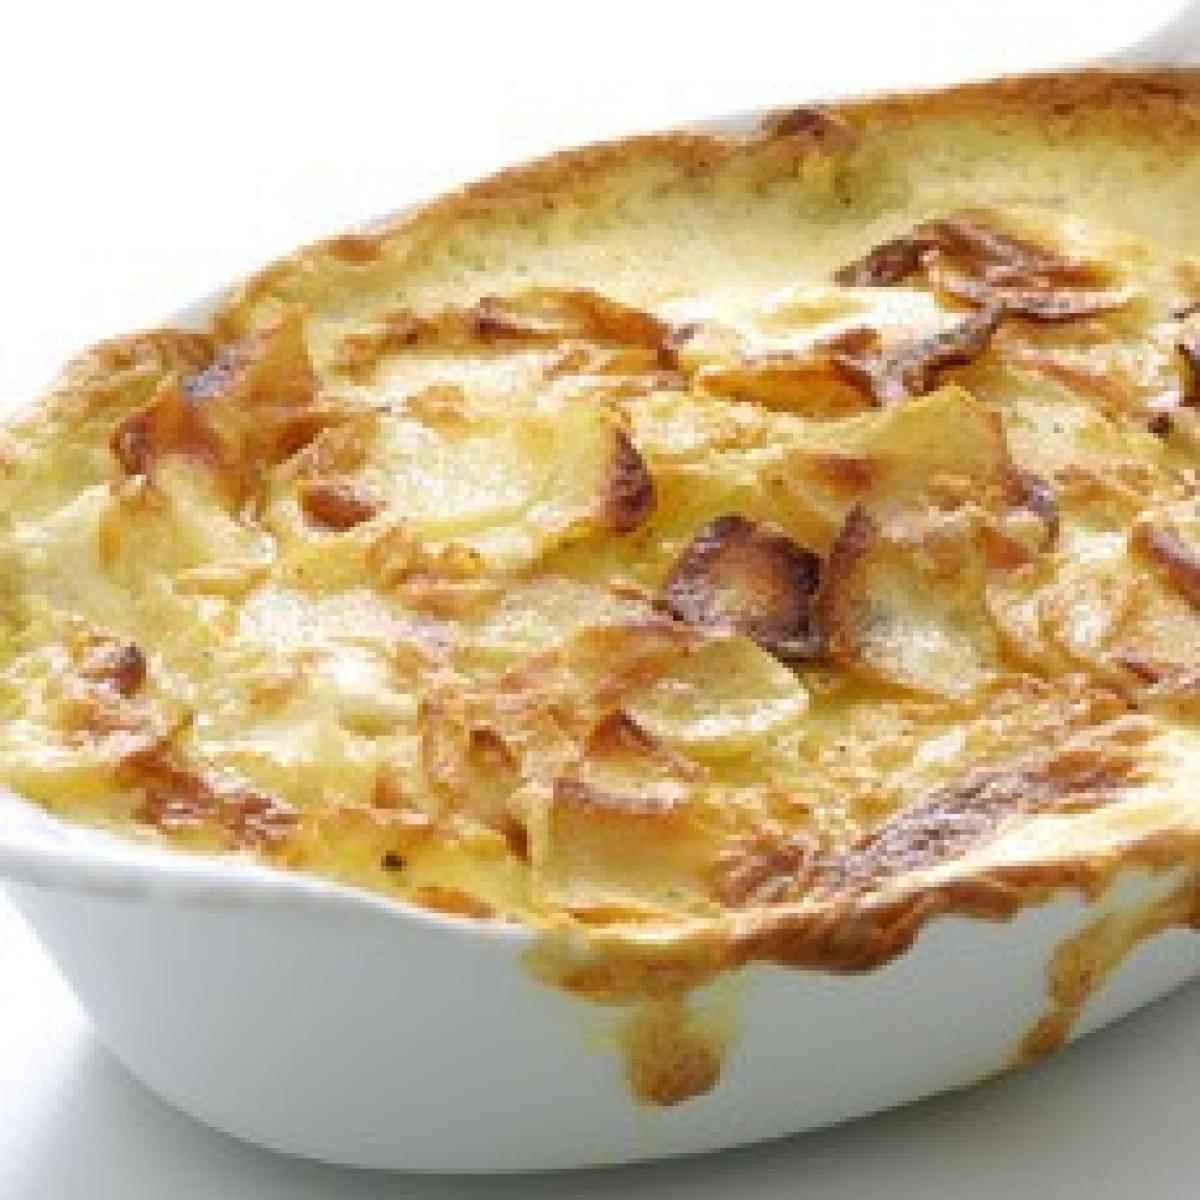 A picture of Delia's Gratin Dauphinois recipe